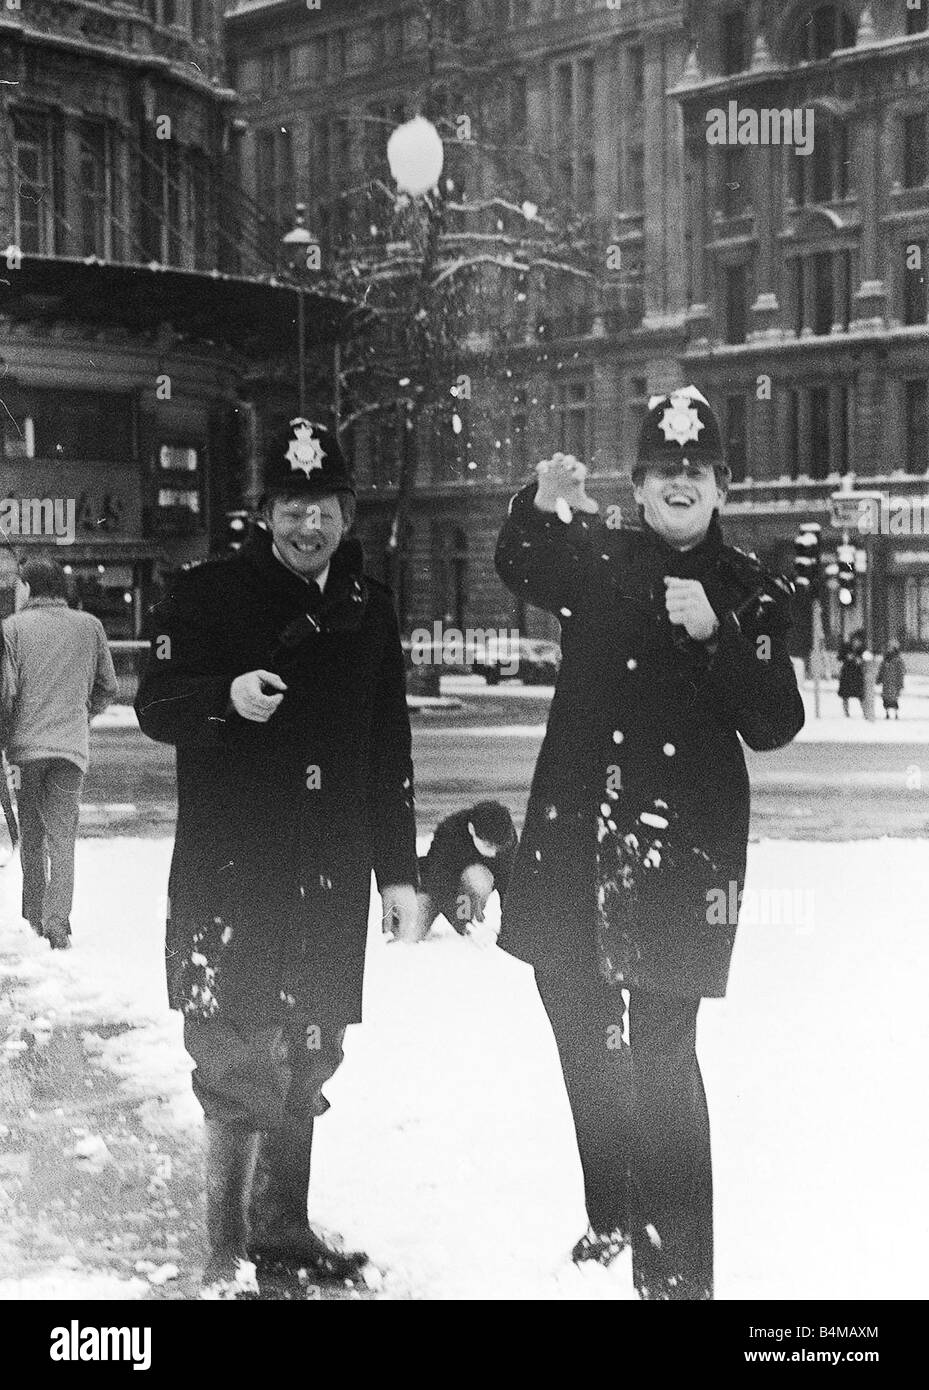 Policemen having a snow ball fight in London after a heavy snow fall January 1985 Stock Photo